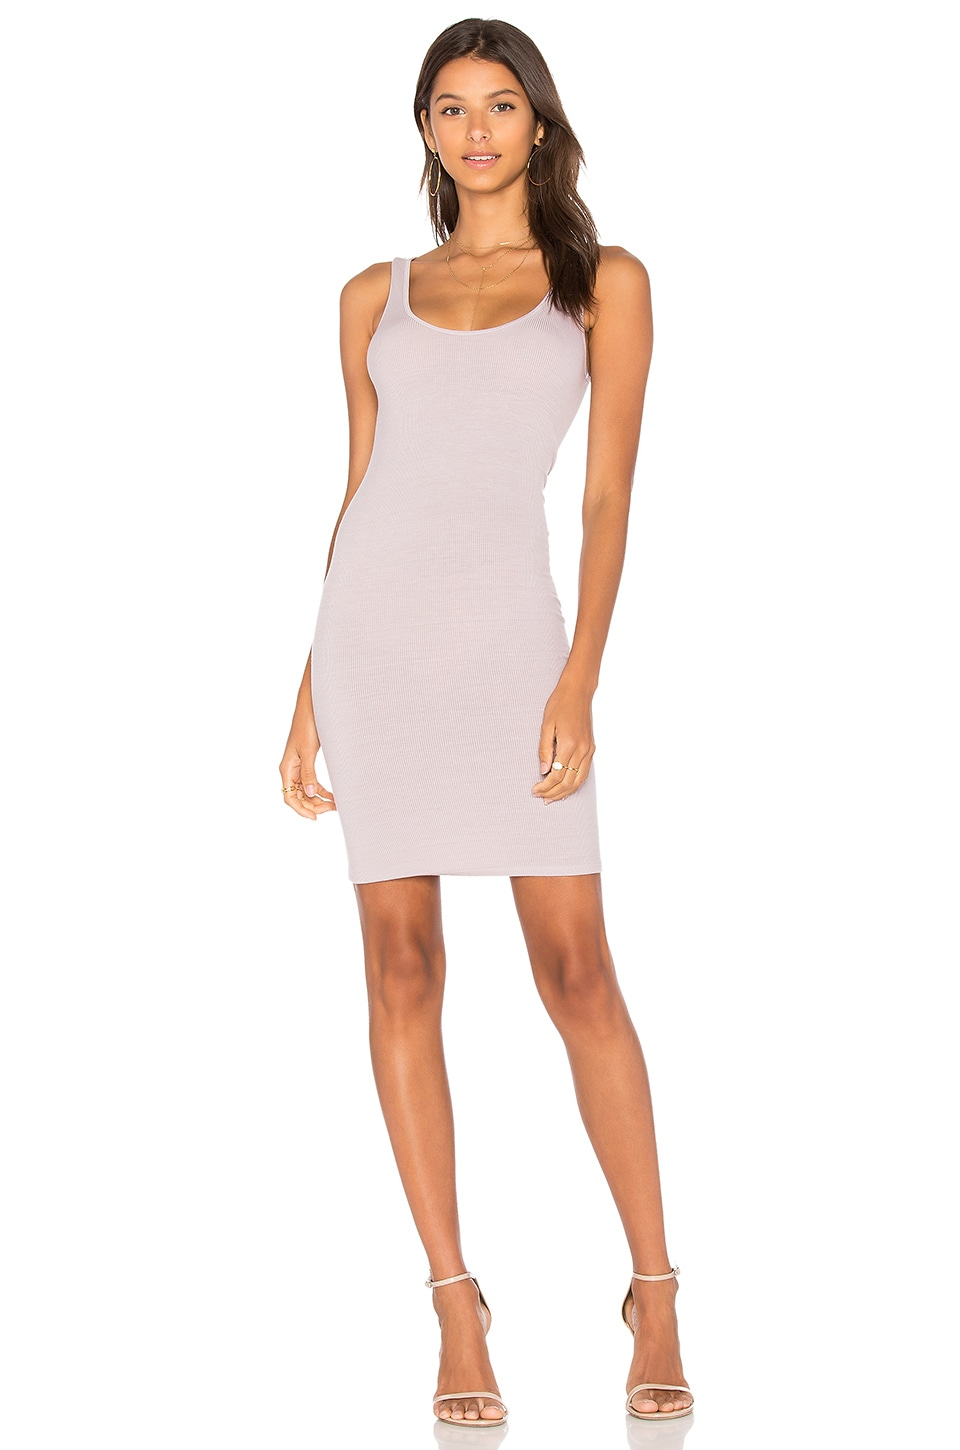 Enza Costa X REVOLVE Rib Tank Mini Dress in Beige Lilac